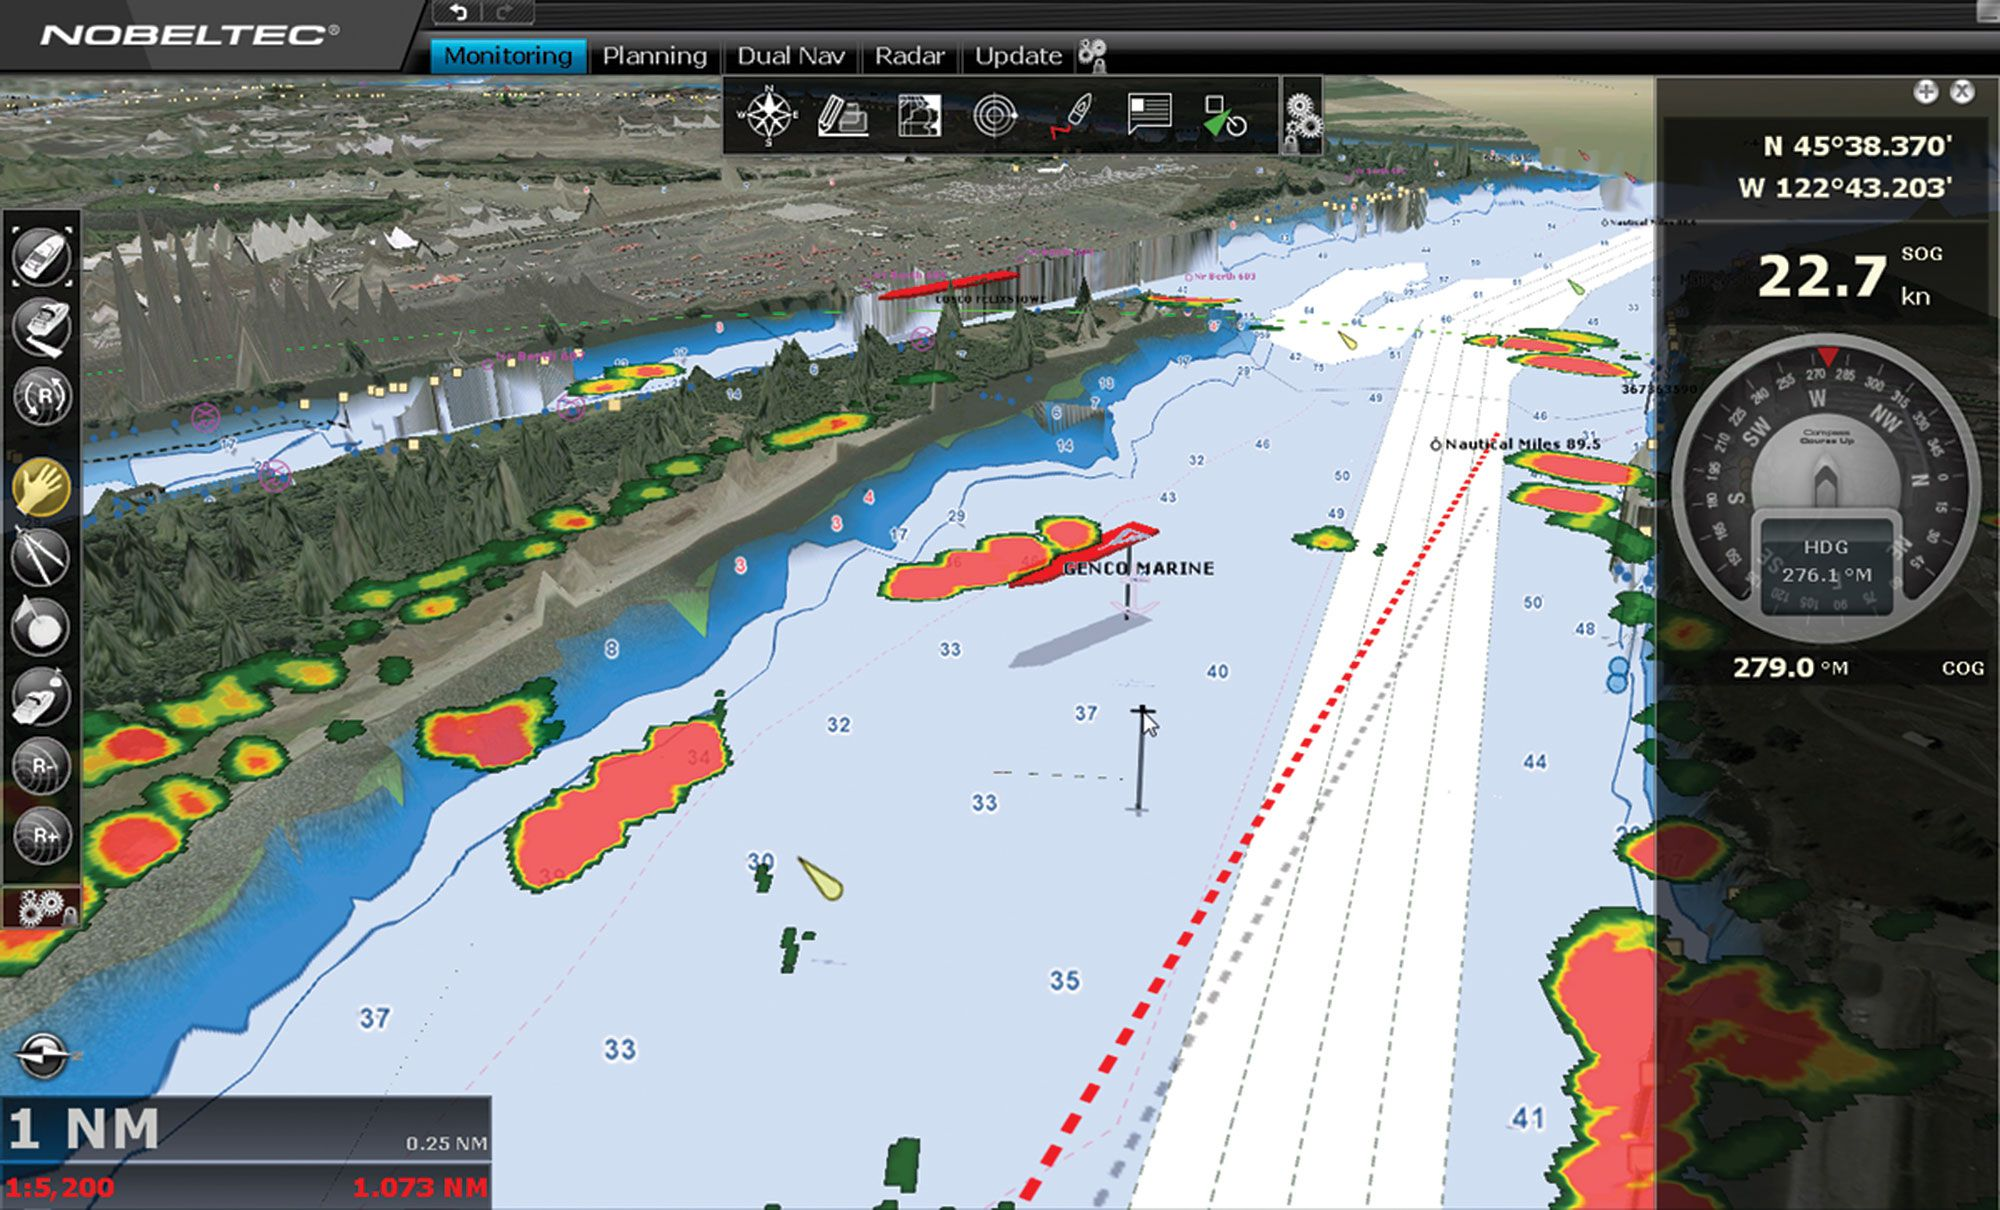 PC Planning Software for Marine Electronics Improves Fishing